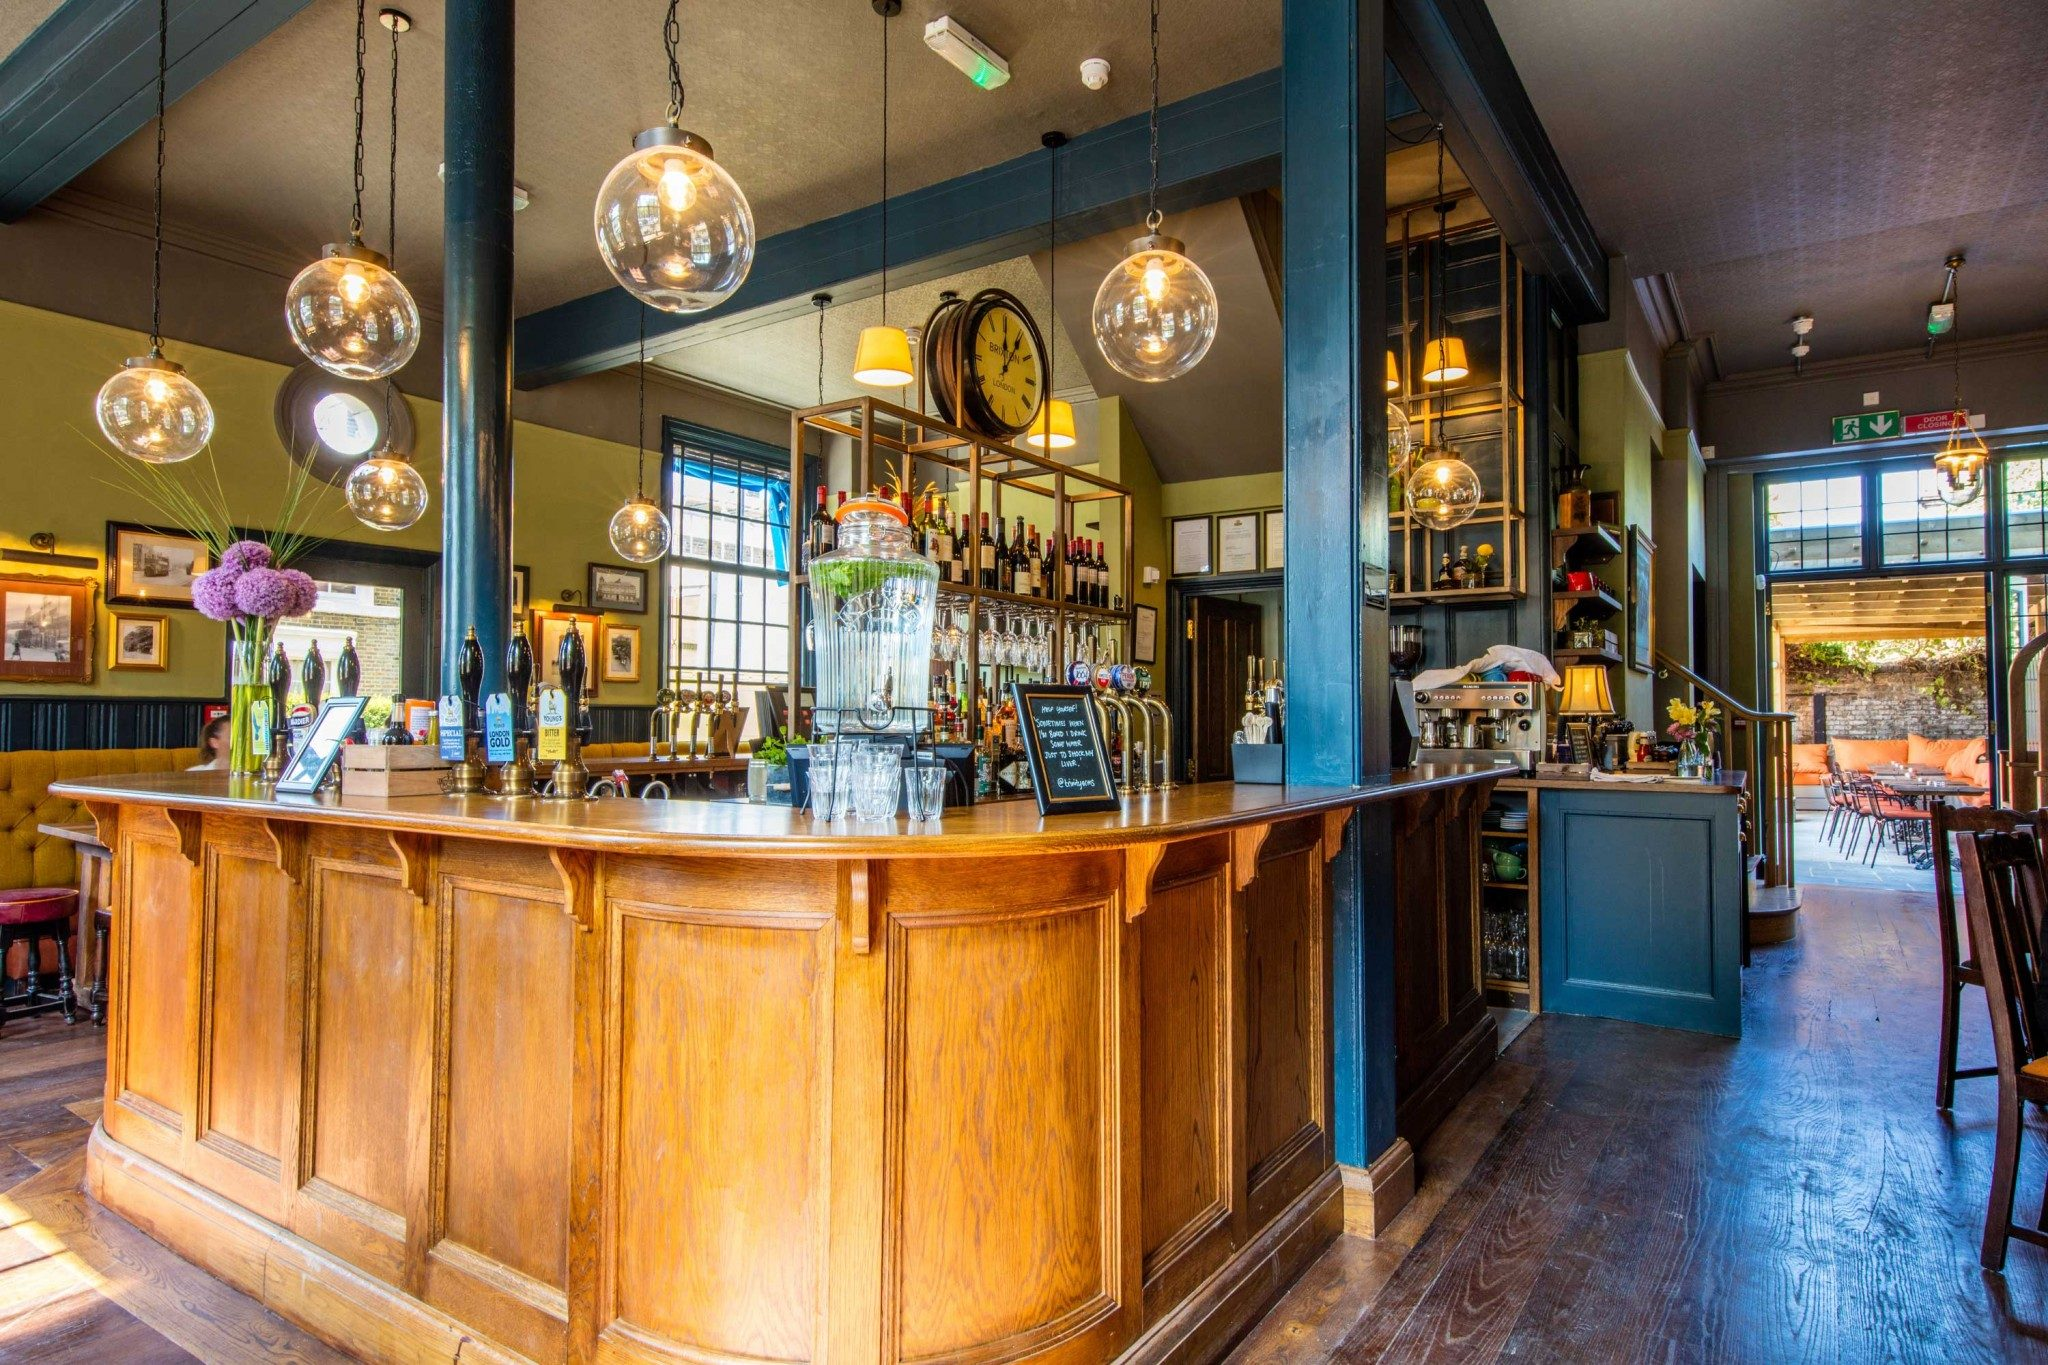 mackenzie wheeler are listed building pub architects based in shoreditch london specializing in restoration conservation and extension of historic buildings